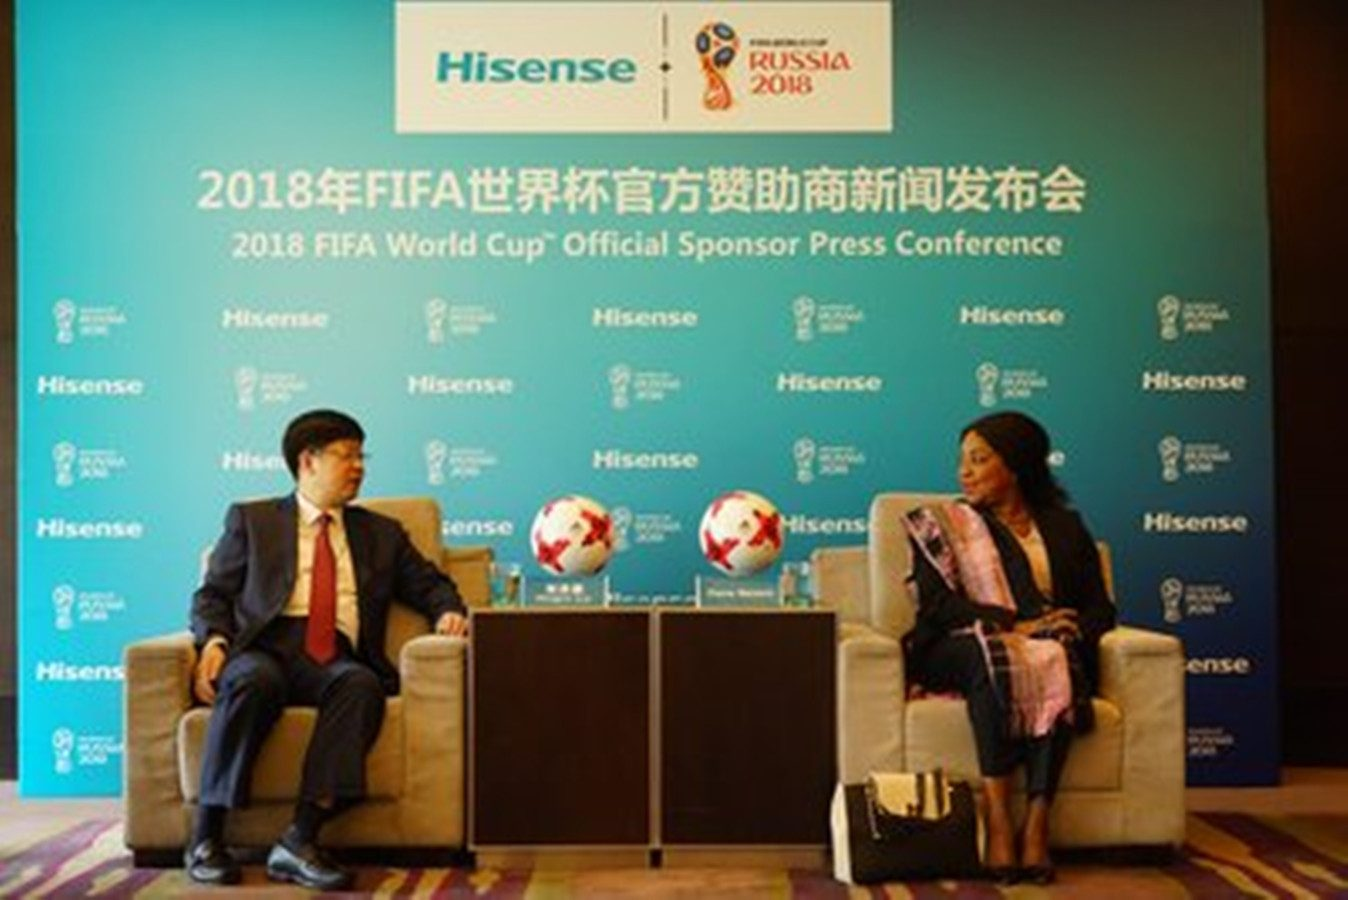 Hisense Becomes Official Sponsor Of 2018 Fifa World CupTM